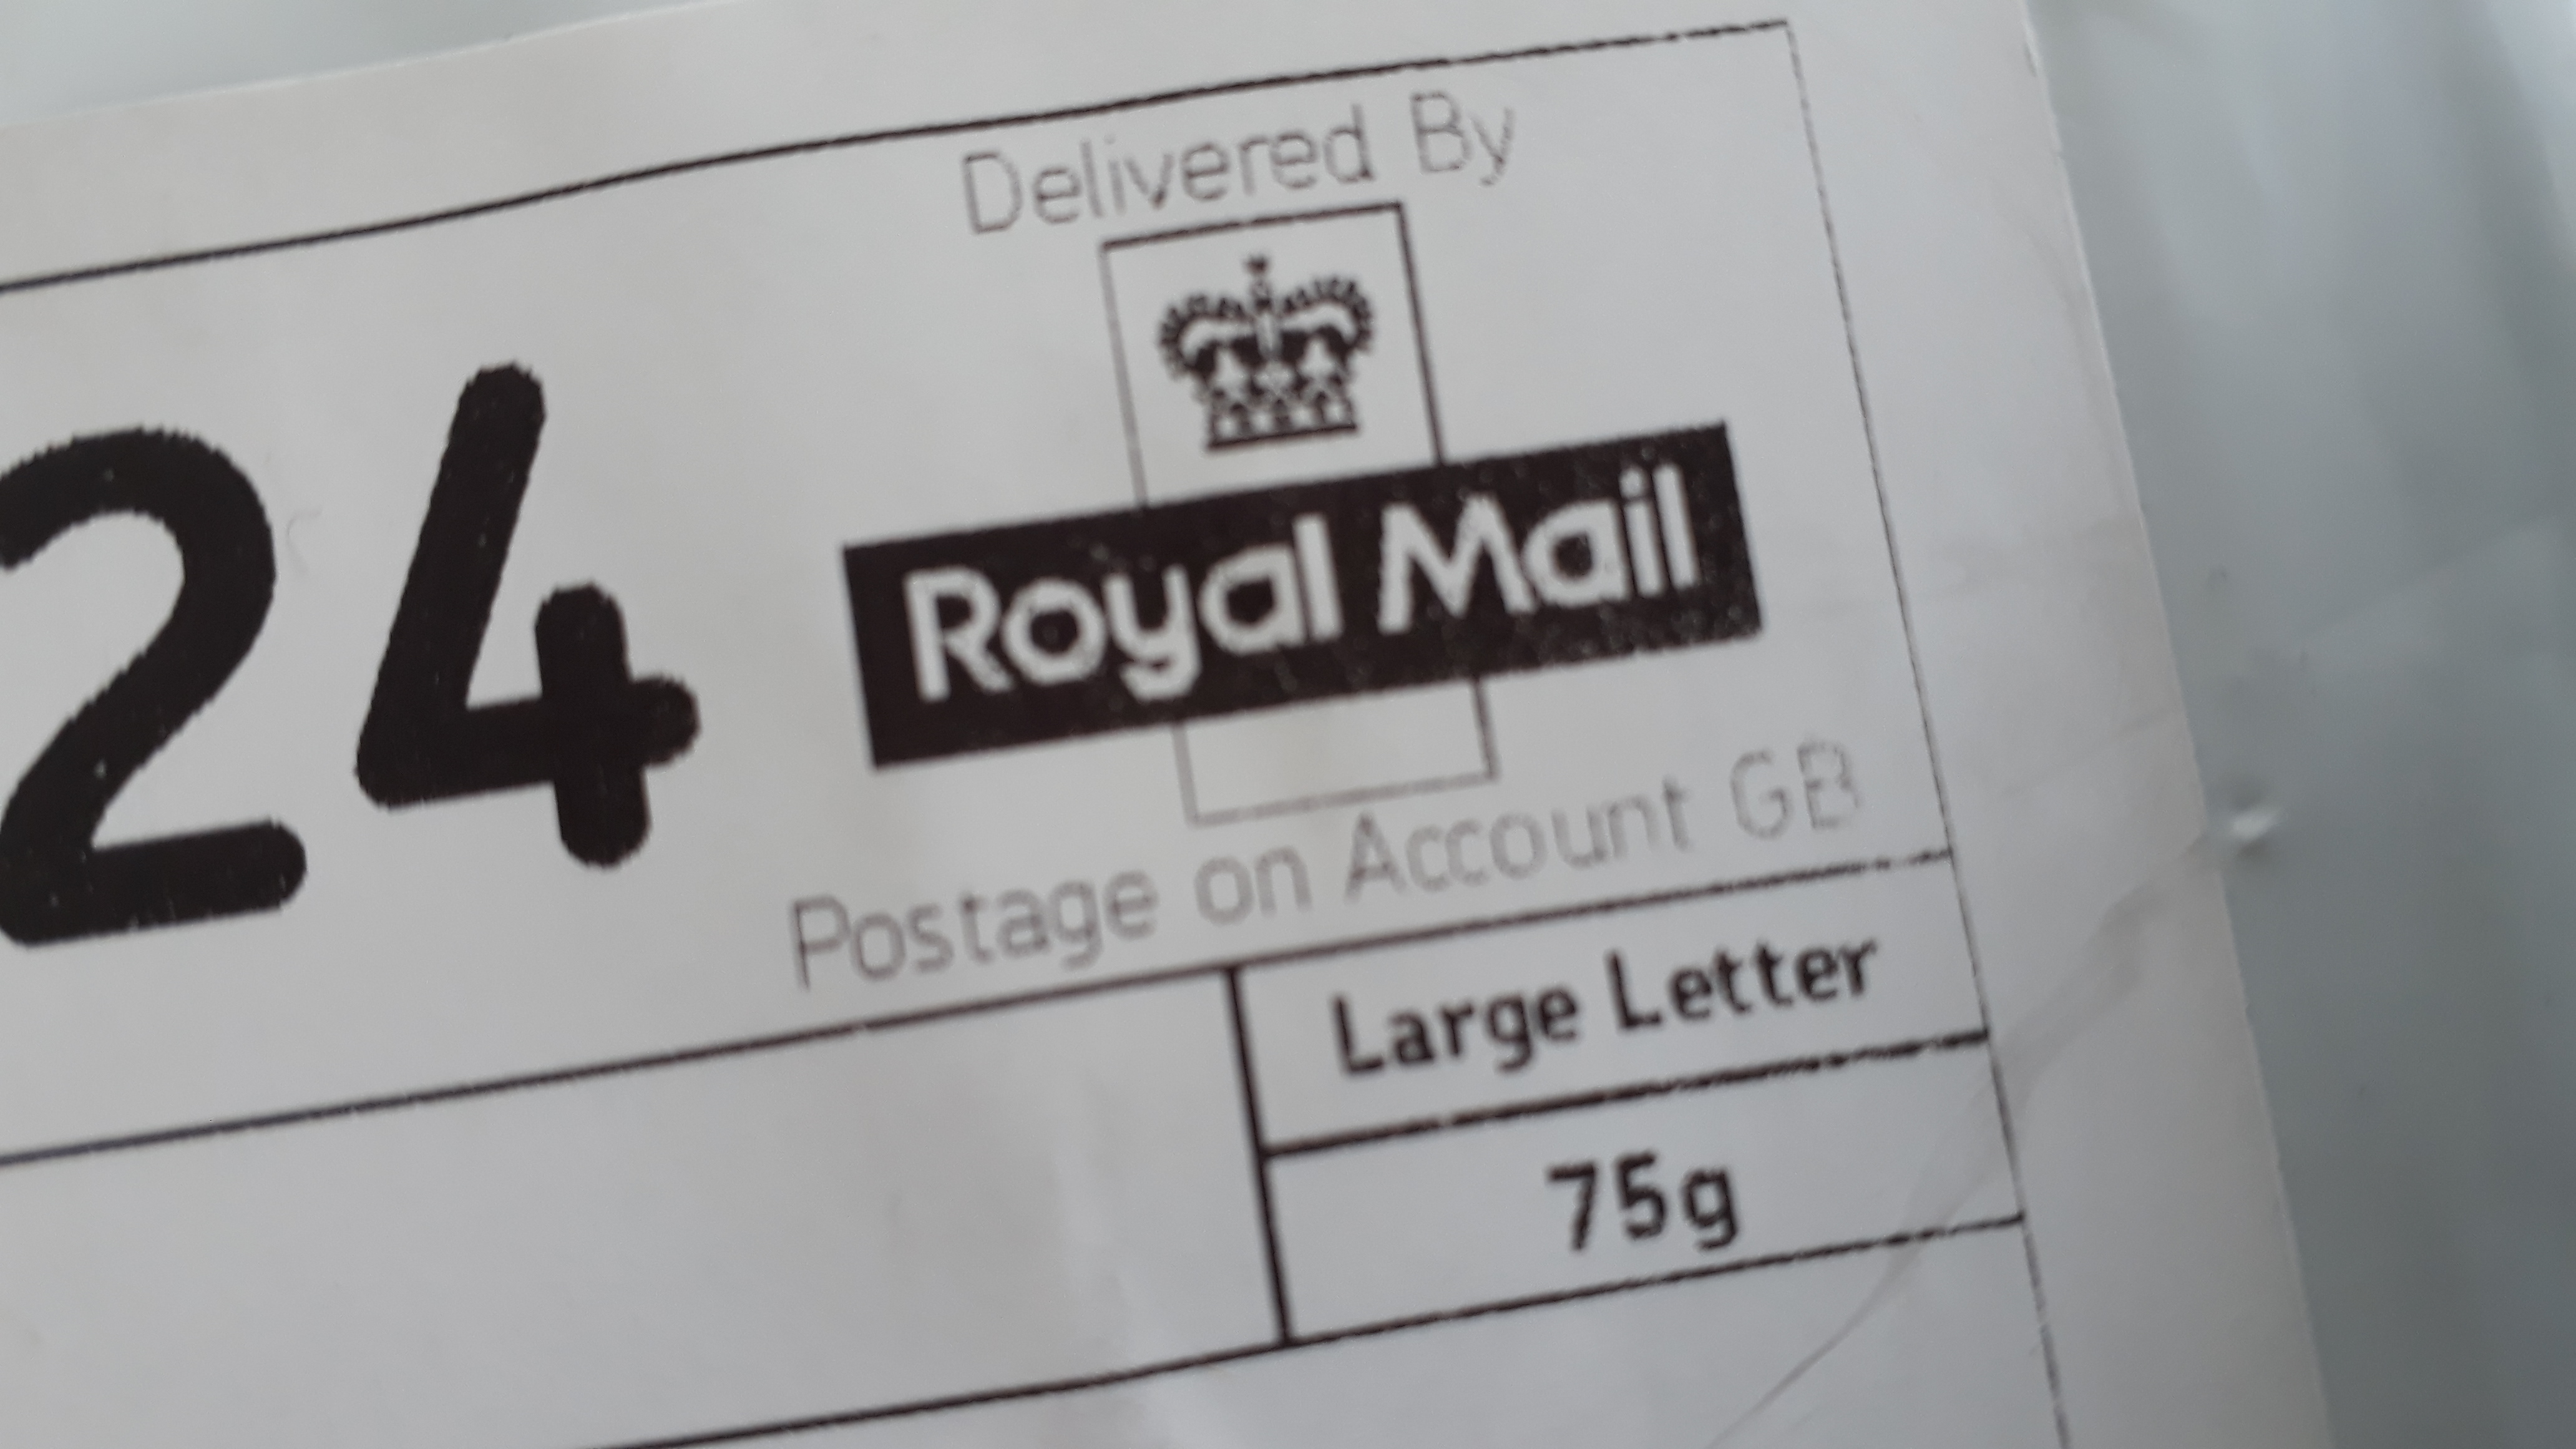 The Royal Mail has one the highest rates of labour disputes in the UK.